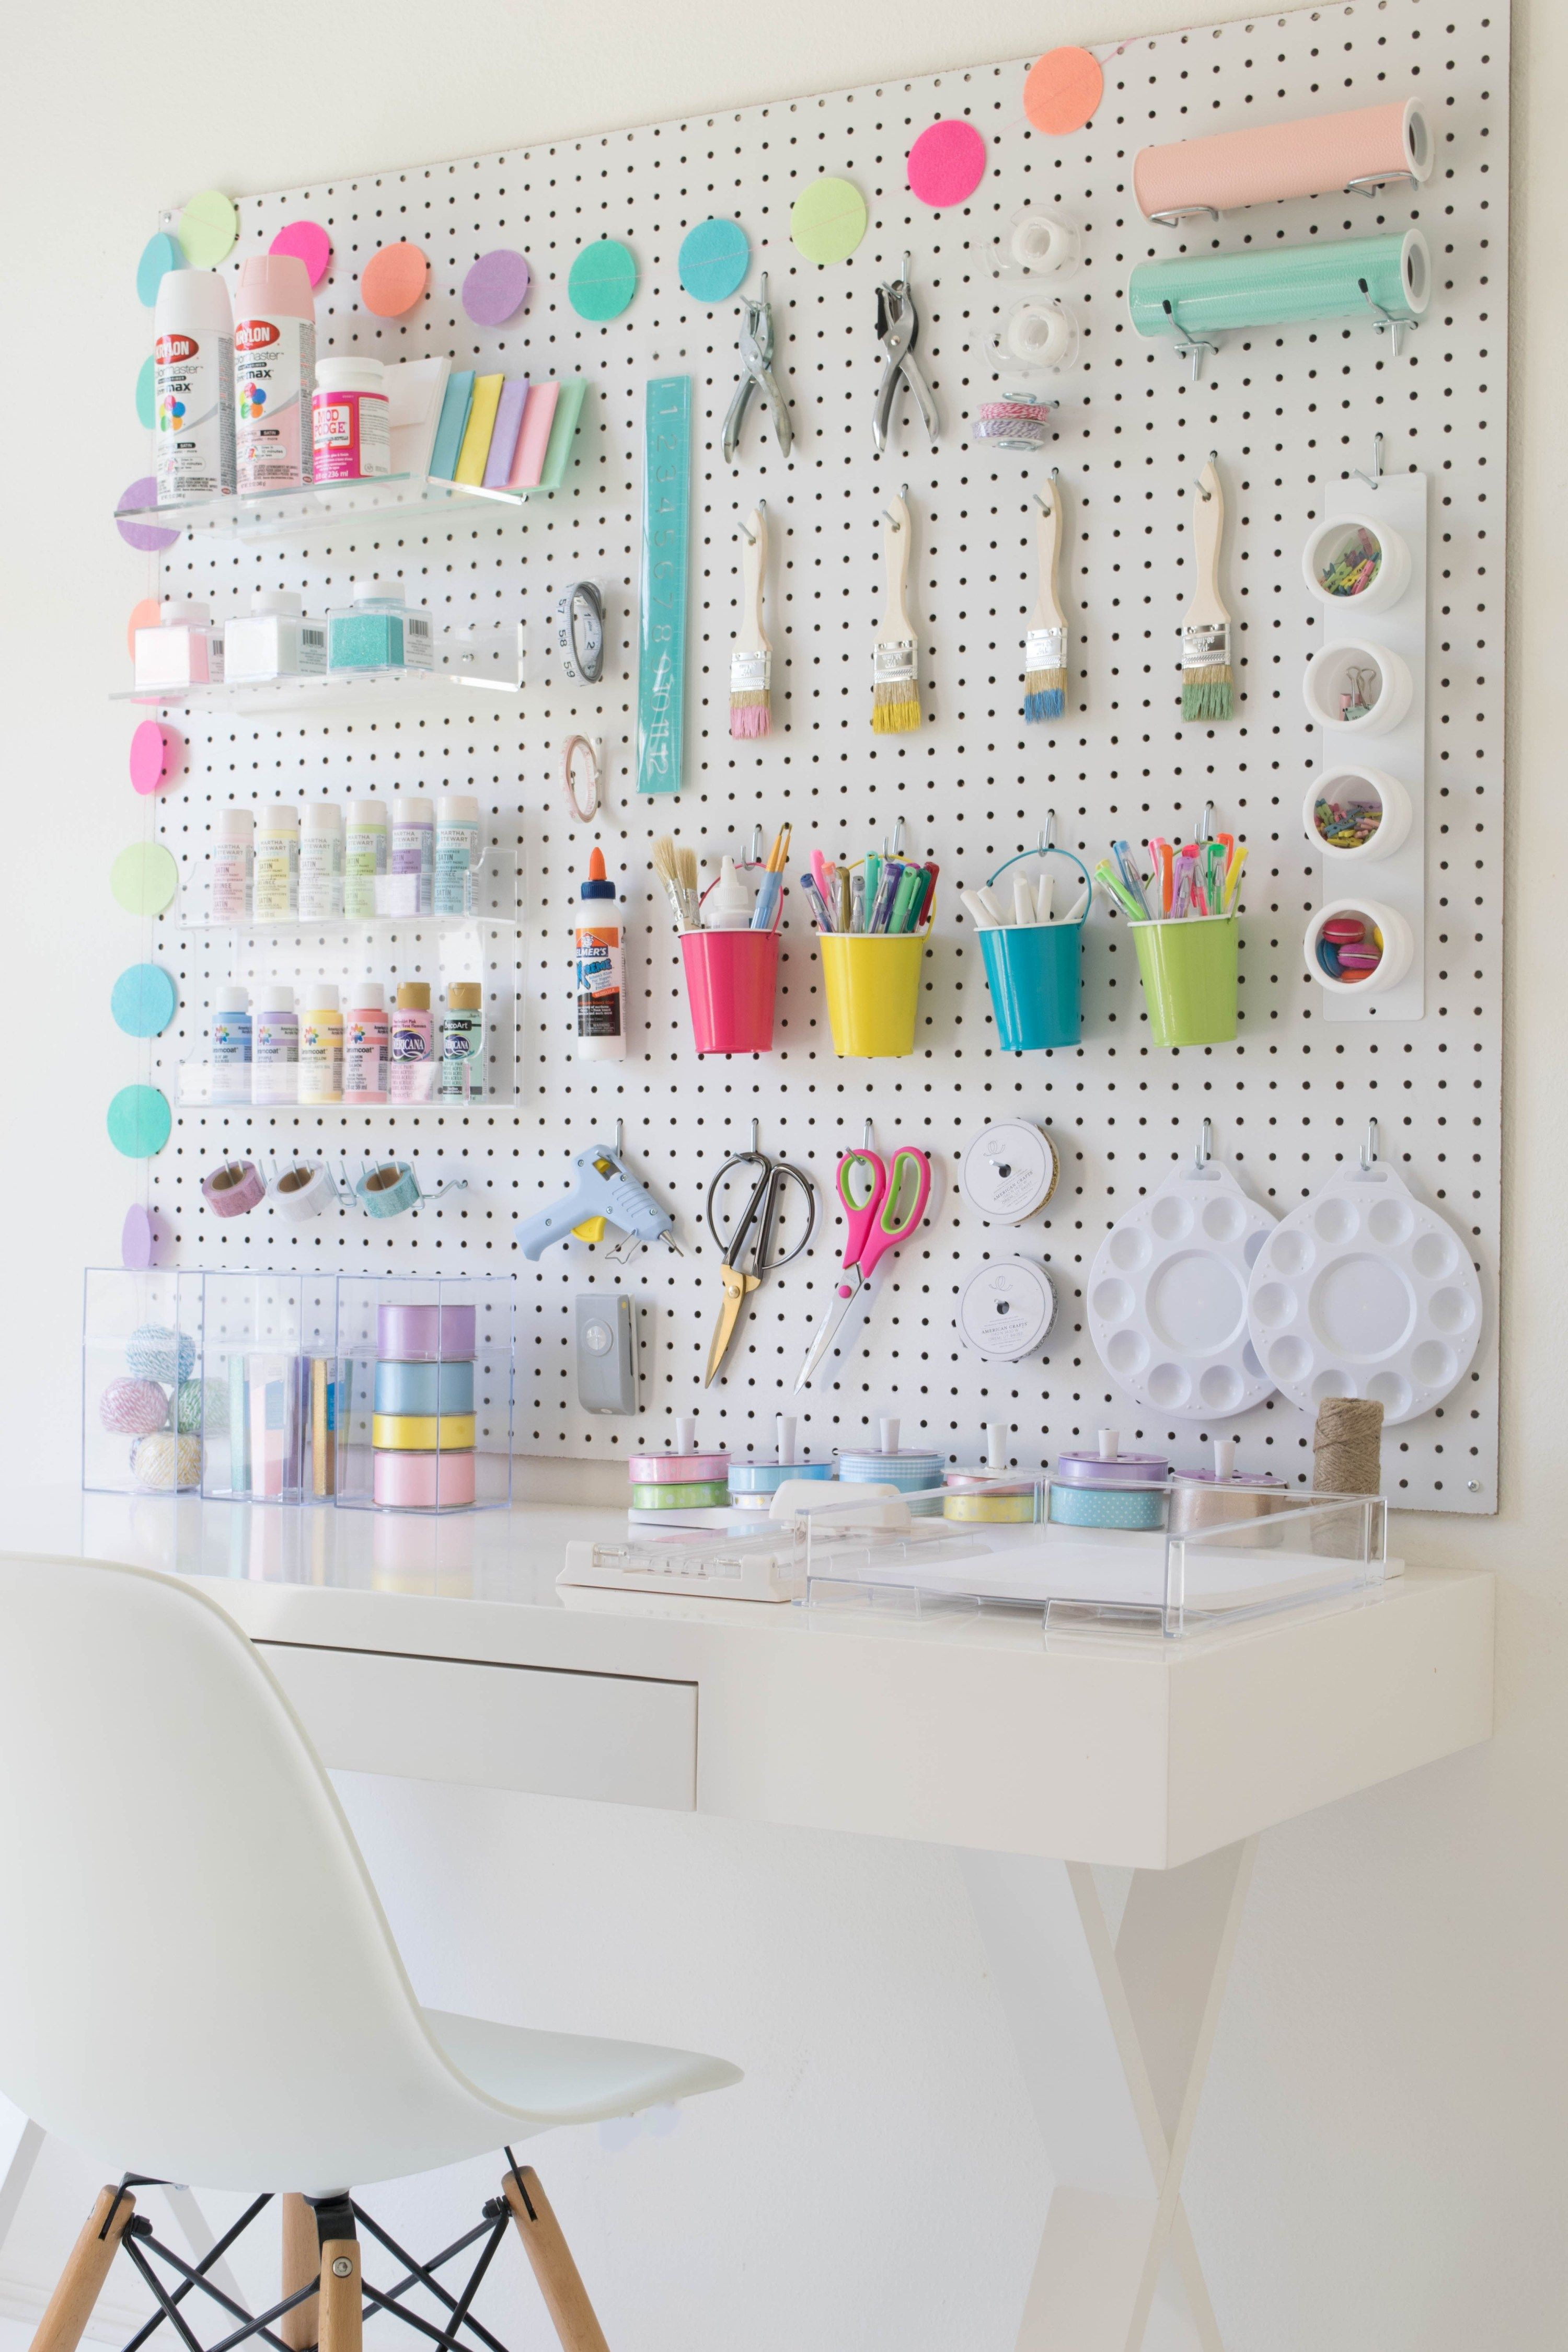 How To Build Your Own Diy Craft Station Craft Room Organisation